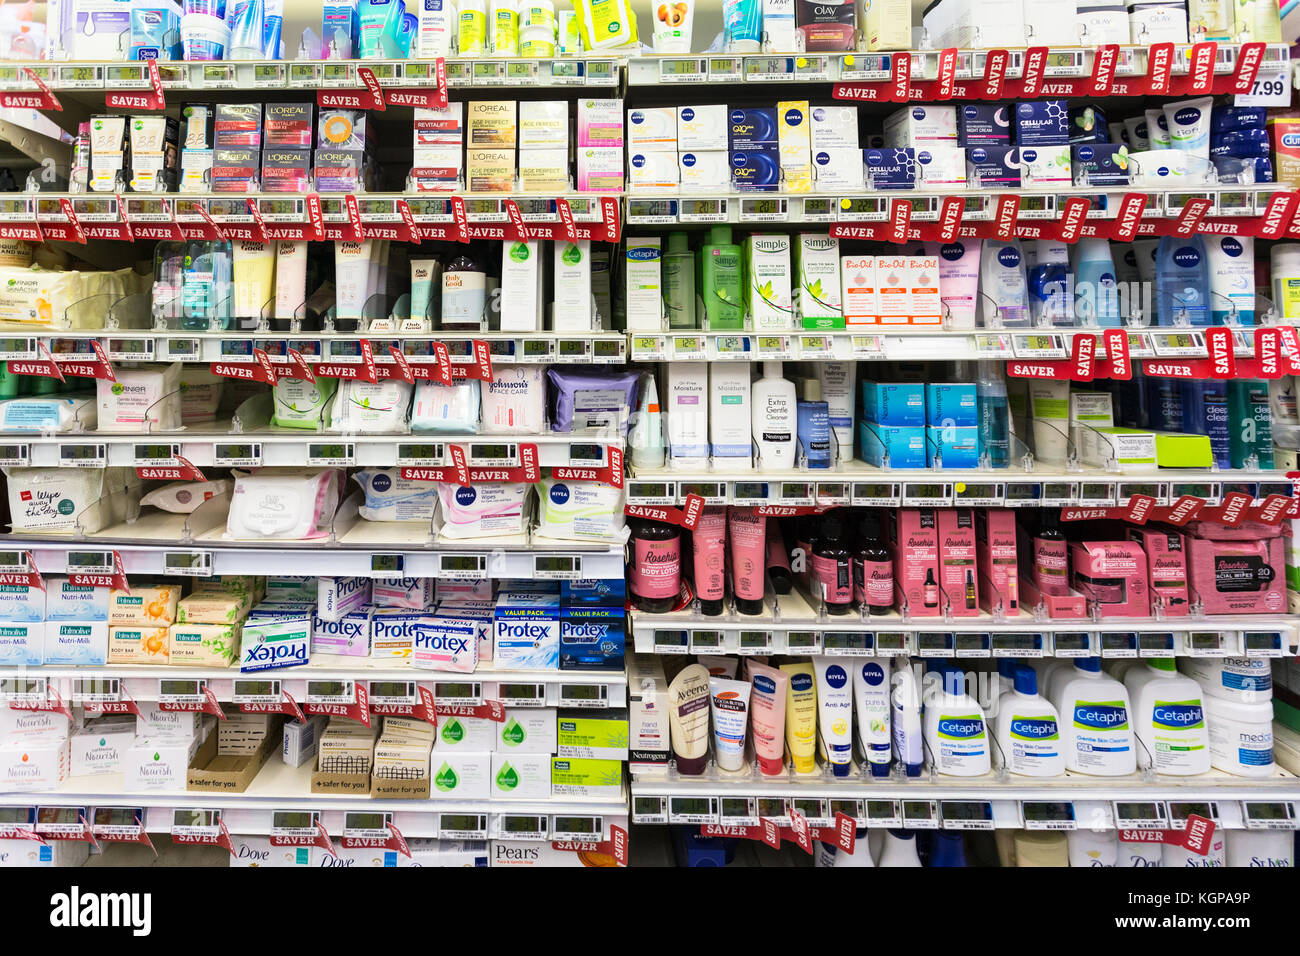 WELLINGTON, NEW ZEALAND - MARCH 1, 2017: Cosmetic and other women hygiene products are displayed in a supermarket - Stock Image